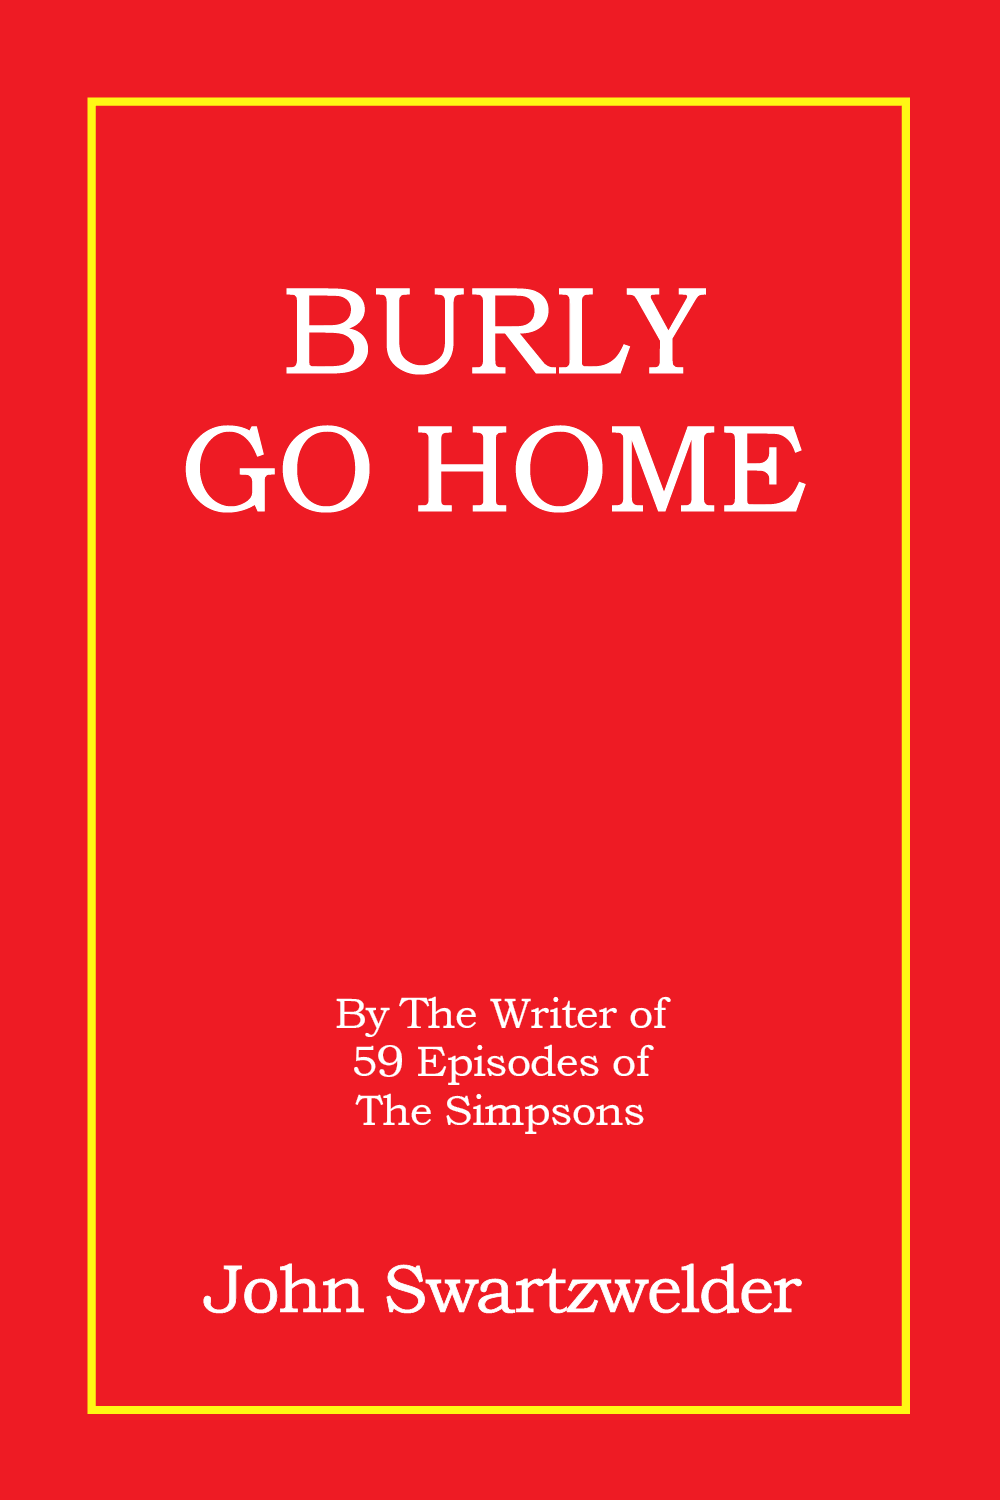 Burly Go Home by John Swartzwelder